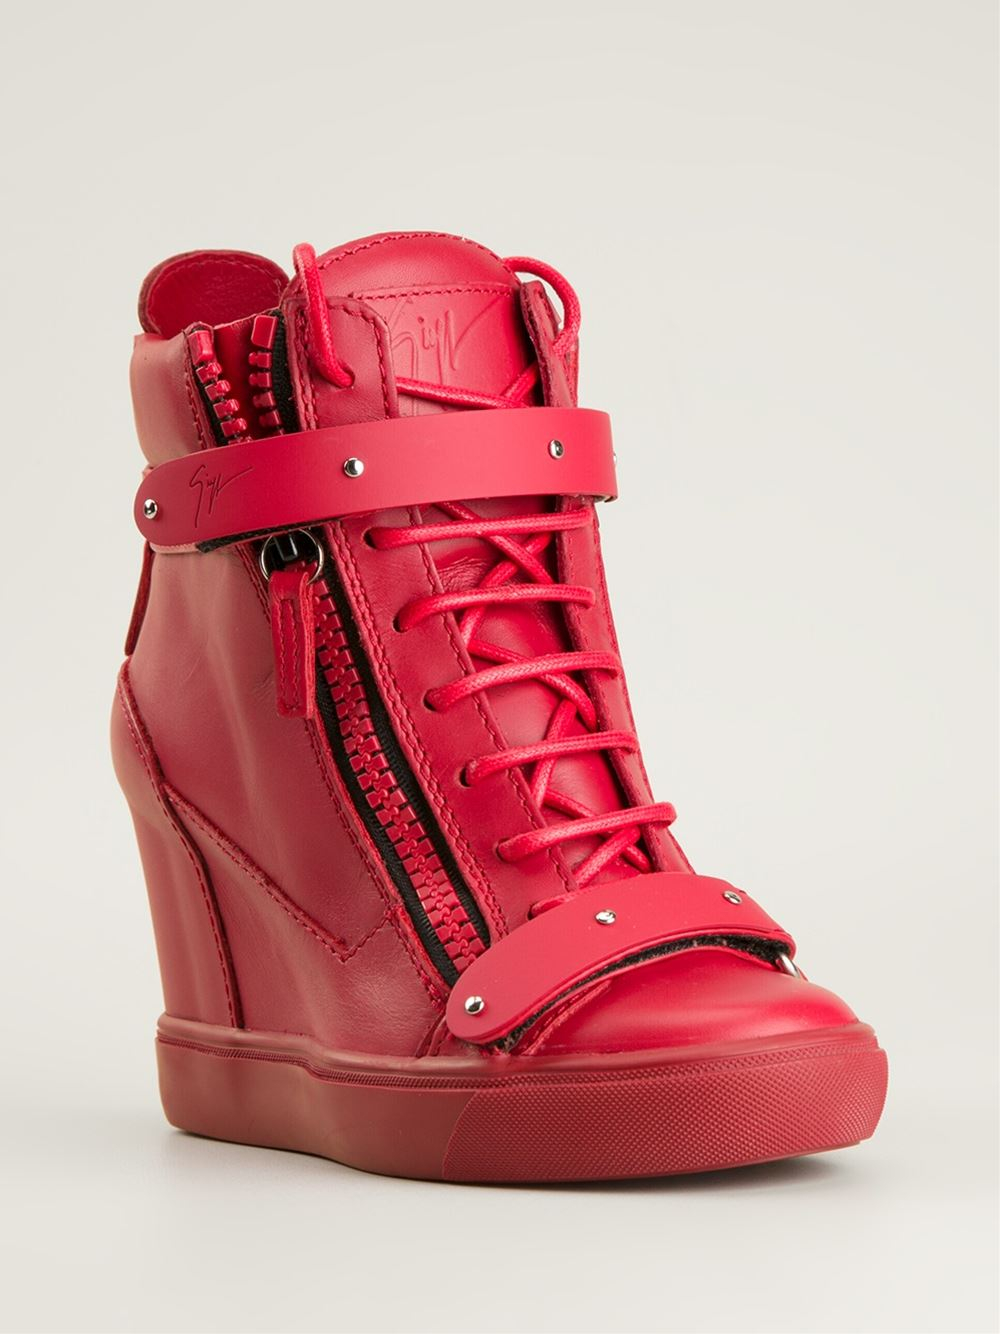 Giuseppe Zanotti Hitop Wedge Sneakers In Red Lyst